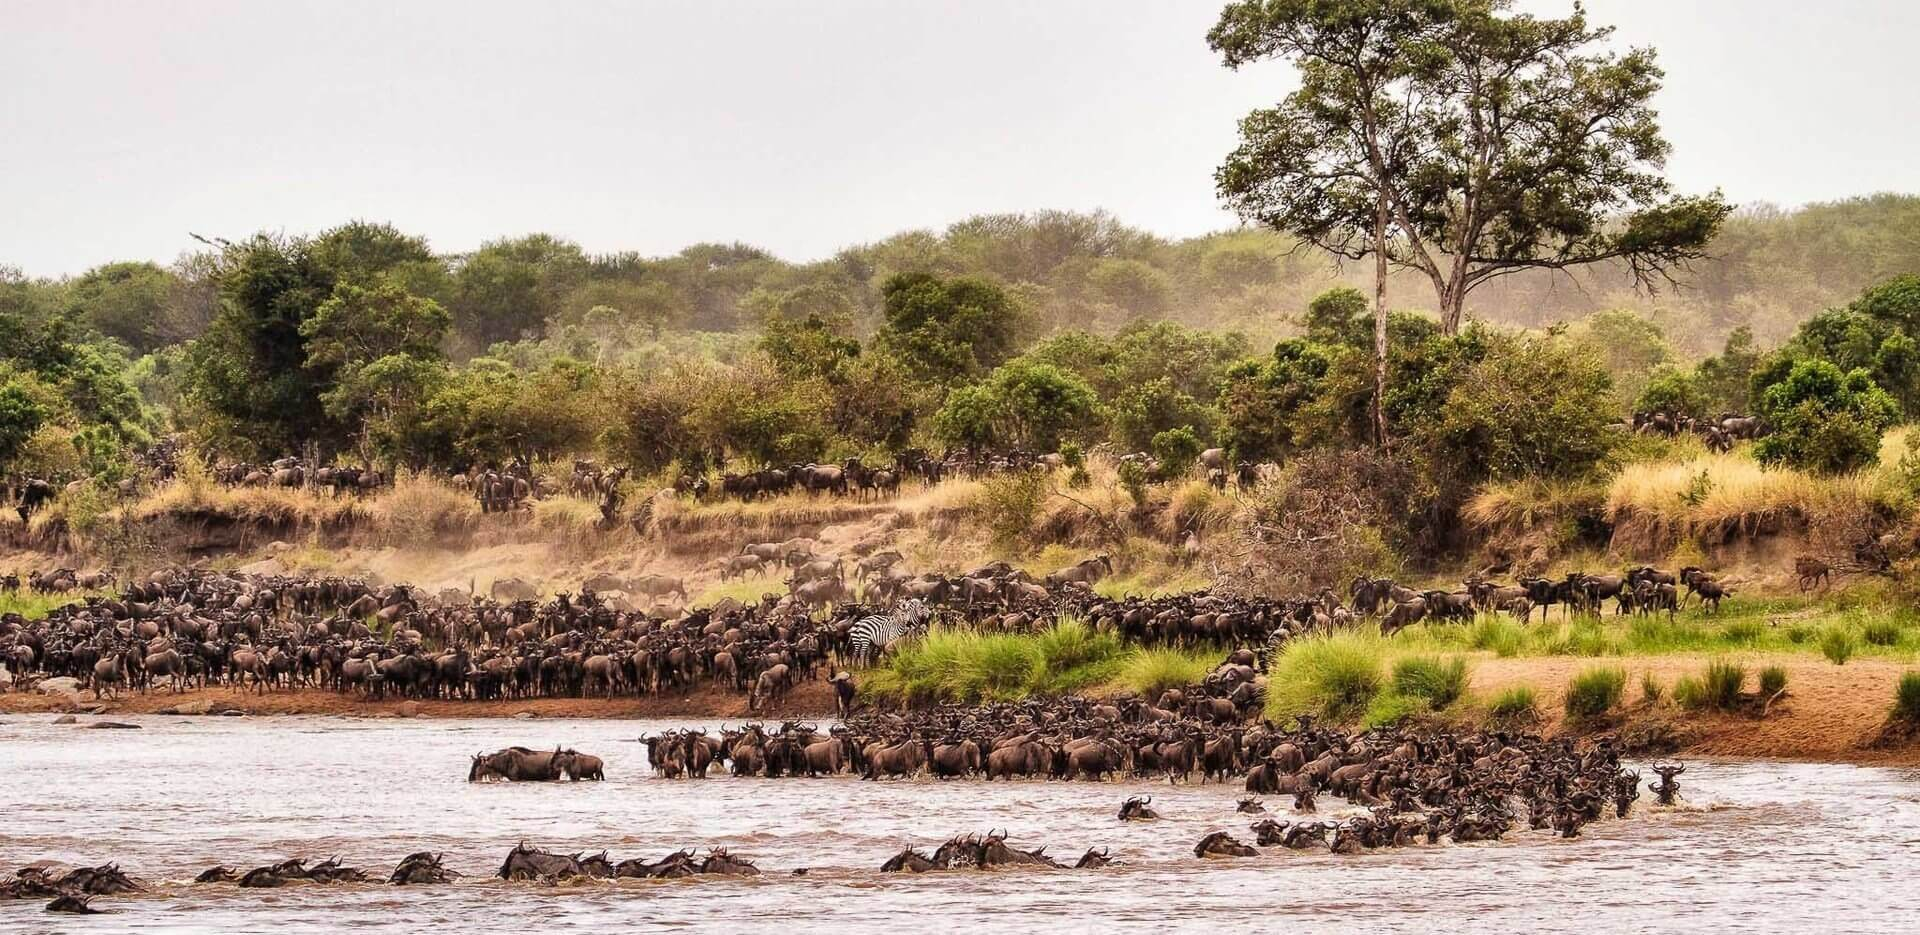 Tanzania Great Wildebeest Migration